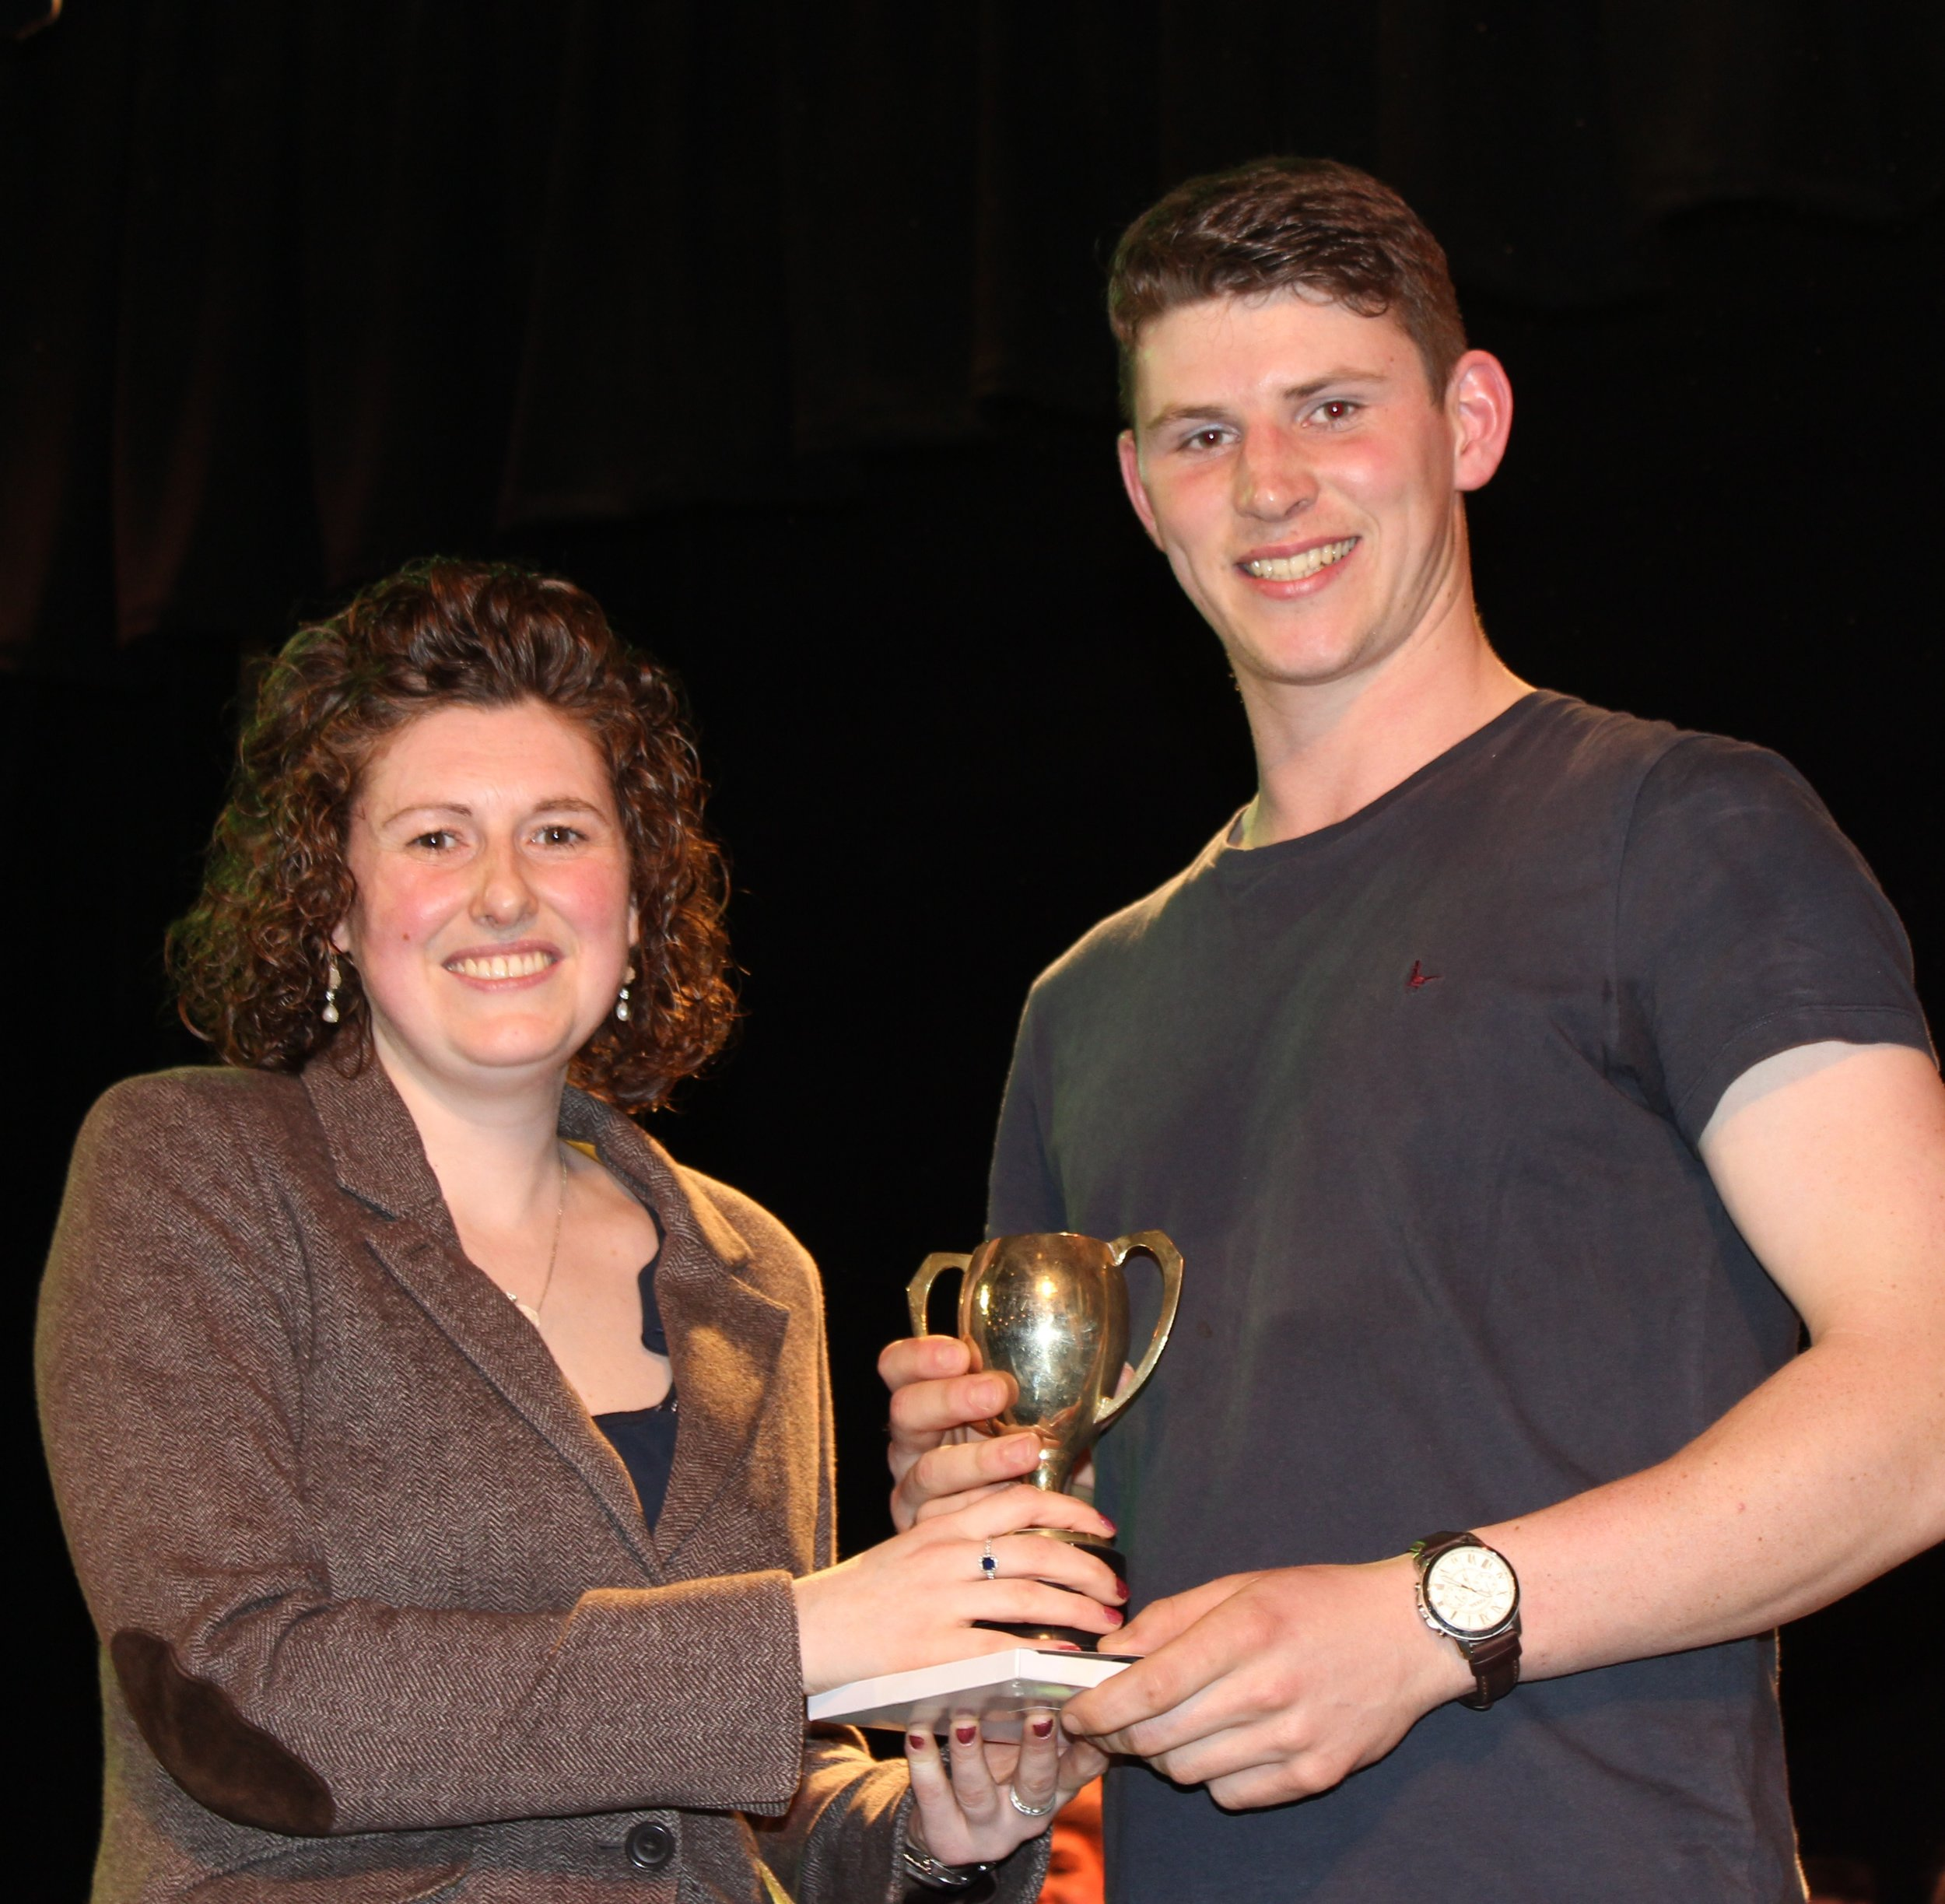 Will Lewis, Dolau YFC - Mr & Mrs RH Moseley for Best Individual Male Performance.